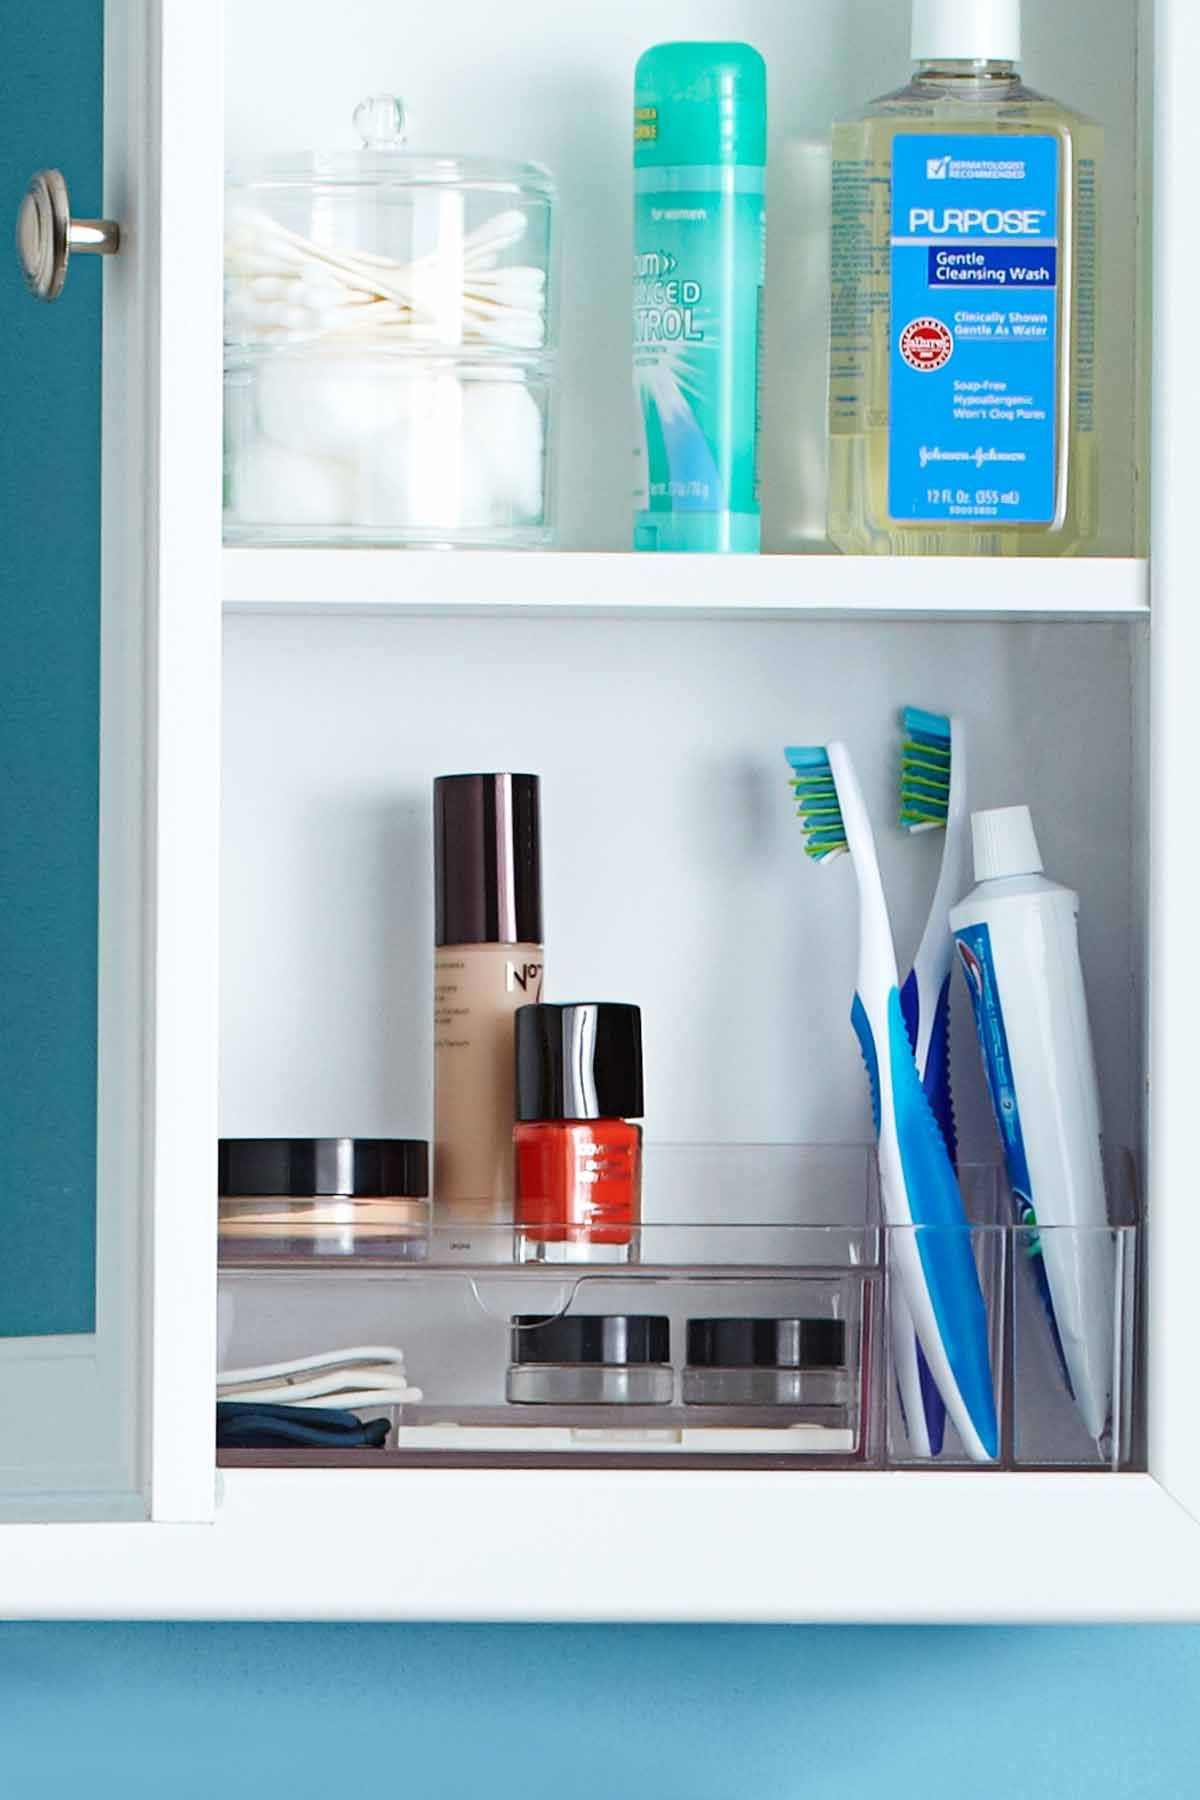 20 Best Bathroom Organization Ideas - How to Organize Your Bathroom